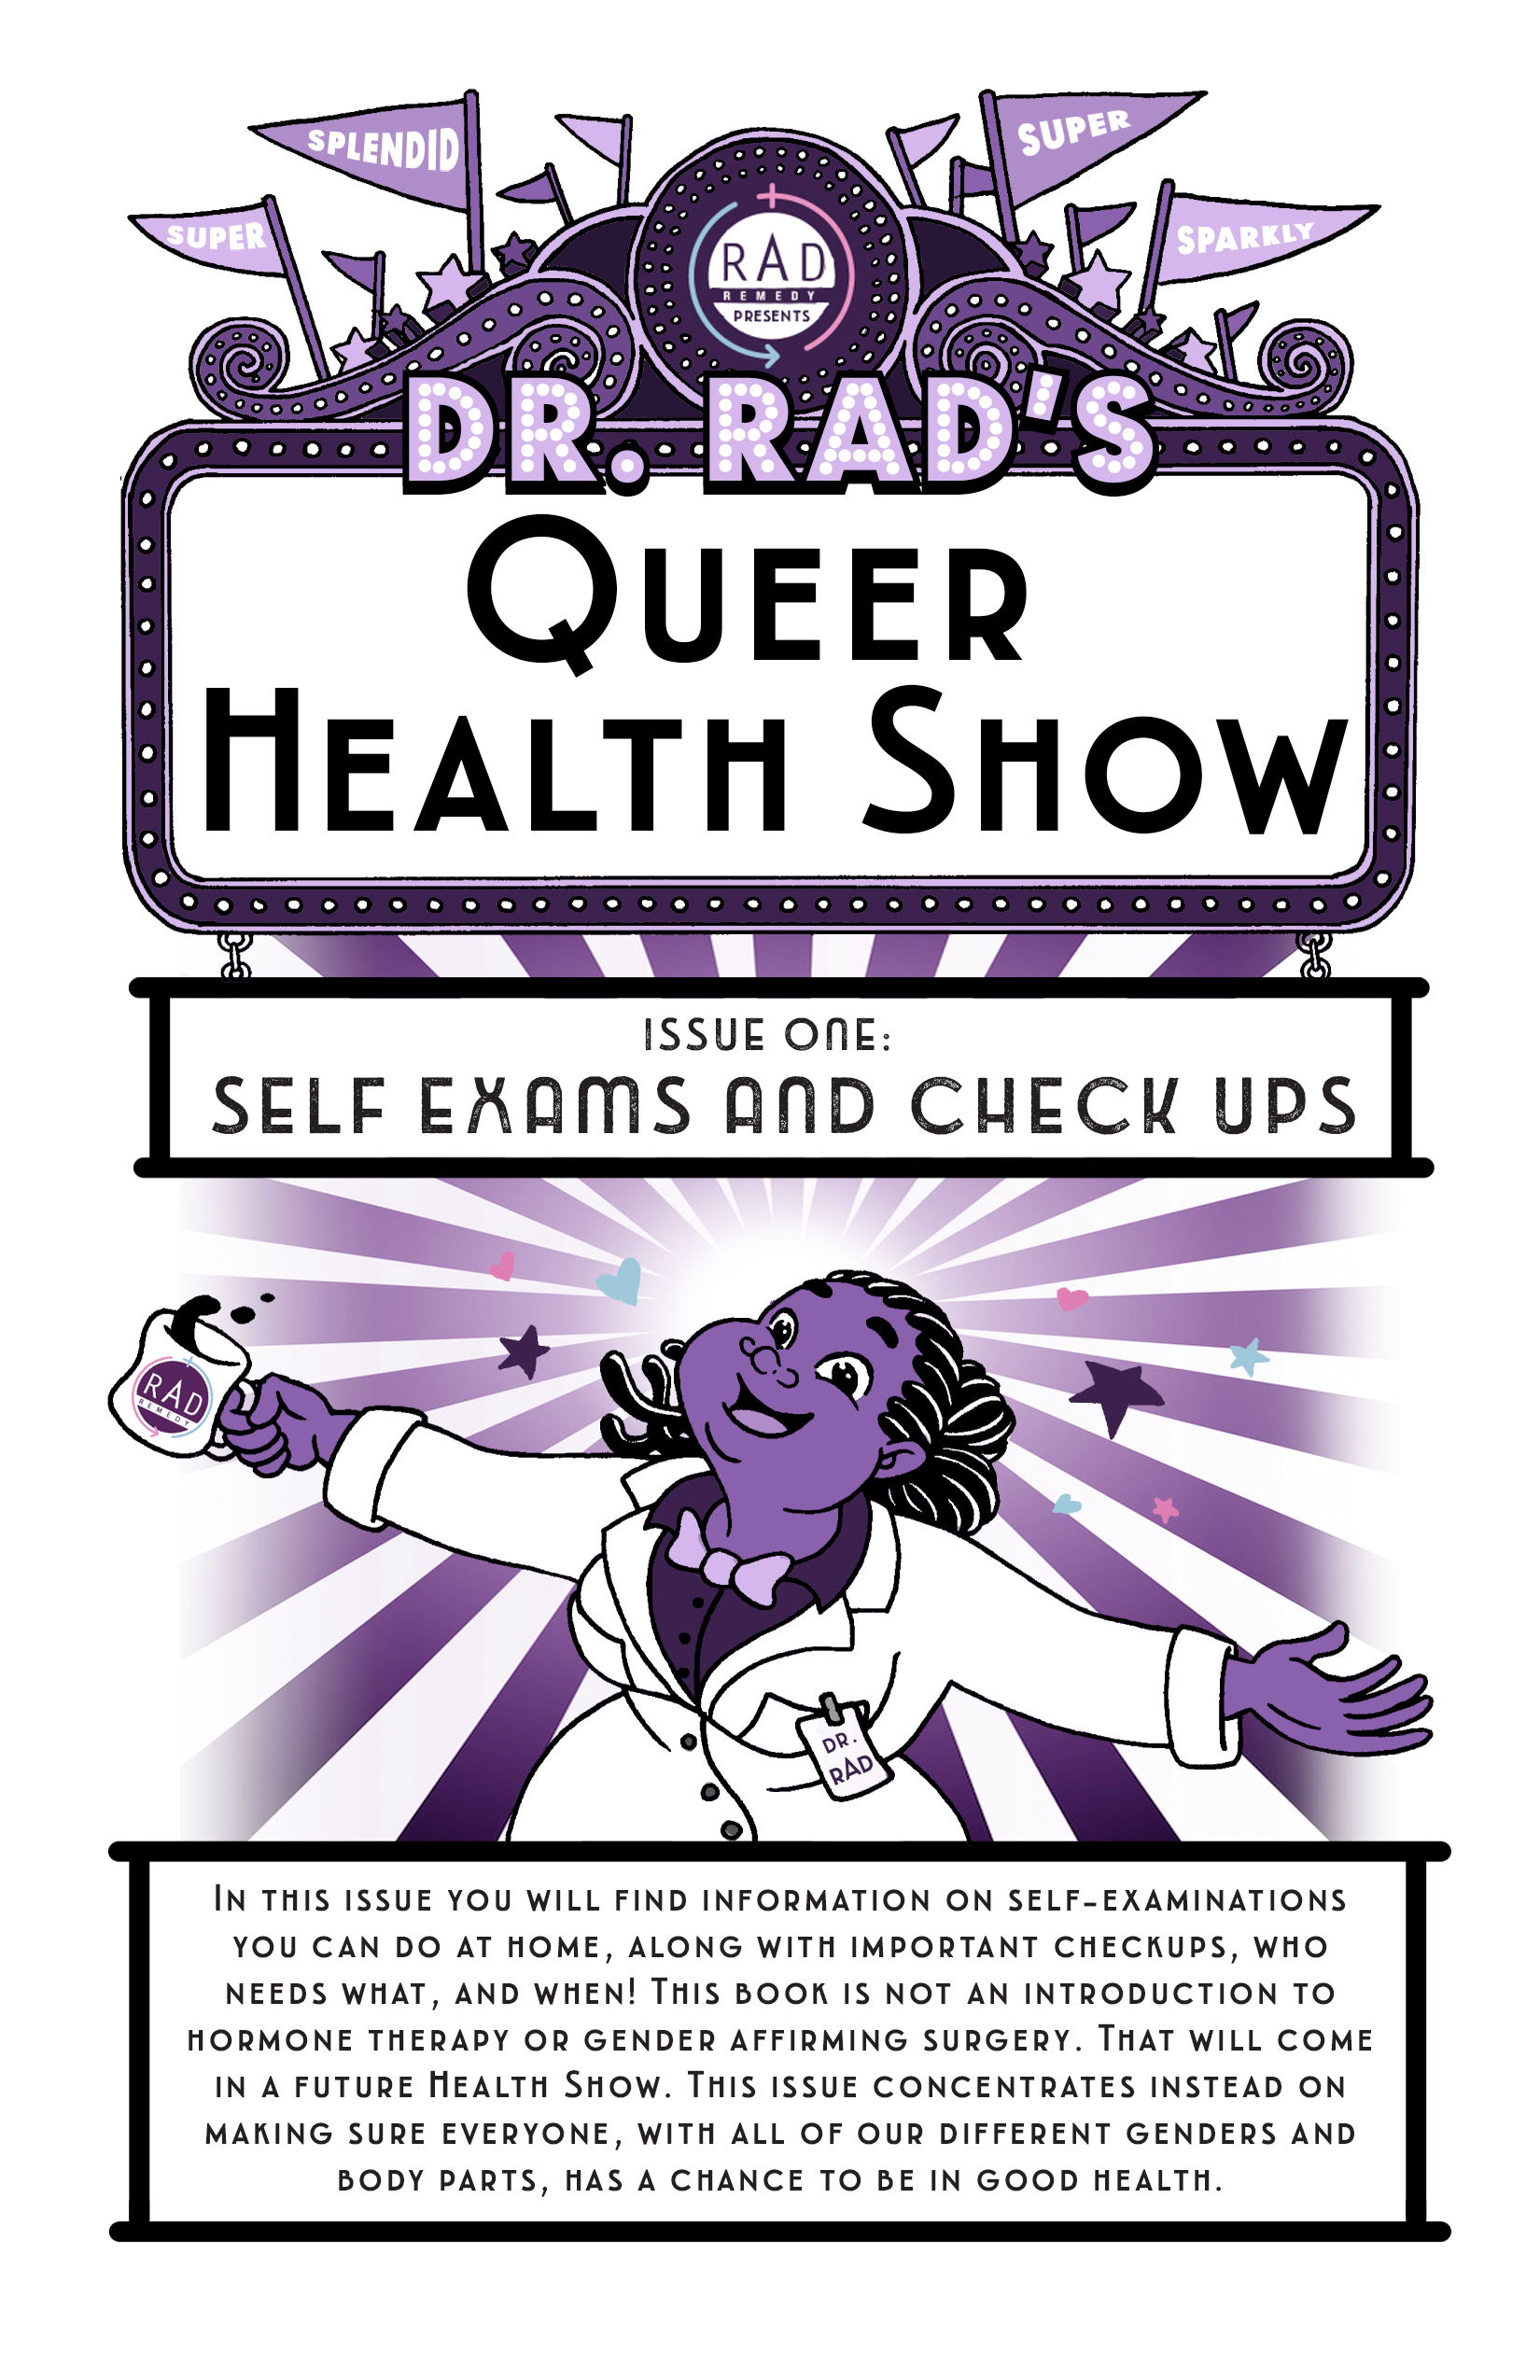 Dr. RAD's Queer Health Show - This book is the first issue in a collaboration between RAD Remedyand Isabella Rotman to release a series of health guides about self-exams, checkups, hormone options, and other topics related to trans and queer health and wellness.RAD Remedyis an organization focused on healthcare for trans, gender non-conforming, intersex & queer folks.RAD's mission is to connect trans, gender non-conforming, intersex, and queer folks to accurate, safe, respectful, and comprehensive care in order to improve individual and community health.RAD's main project is the RAD database, which is filled with community-reviewed providers.Download here!